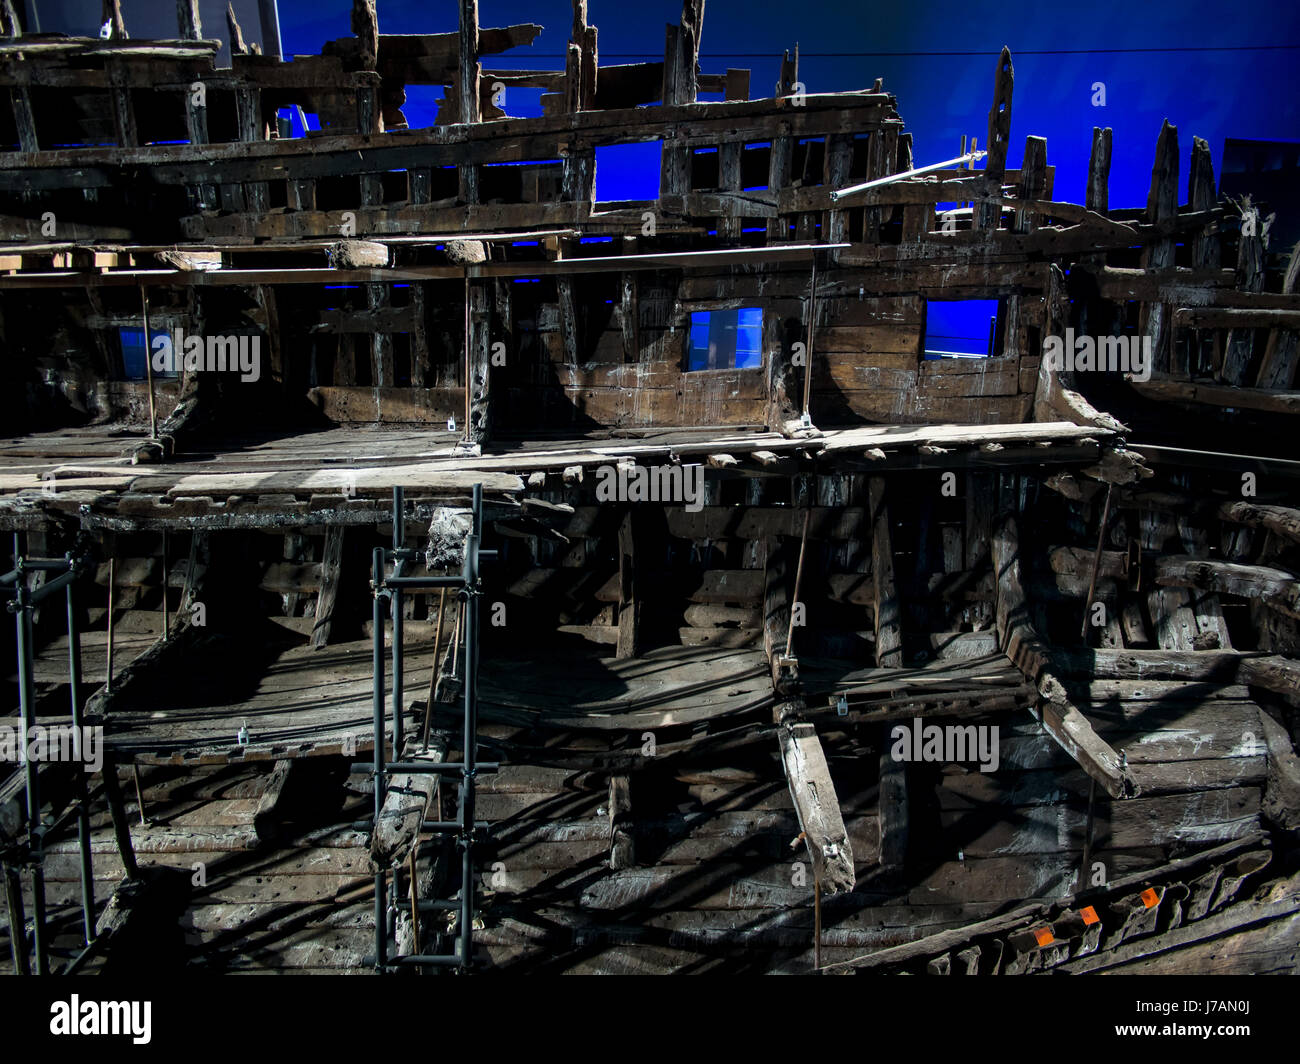 a-section-of-the-tudor-warship-the-mary-